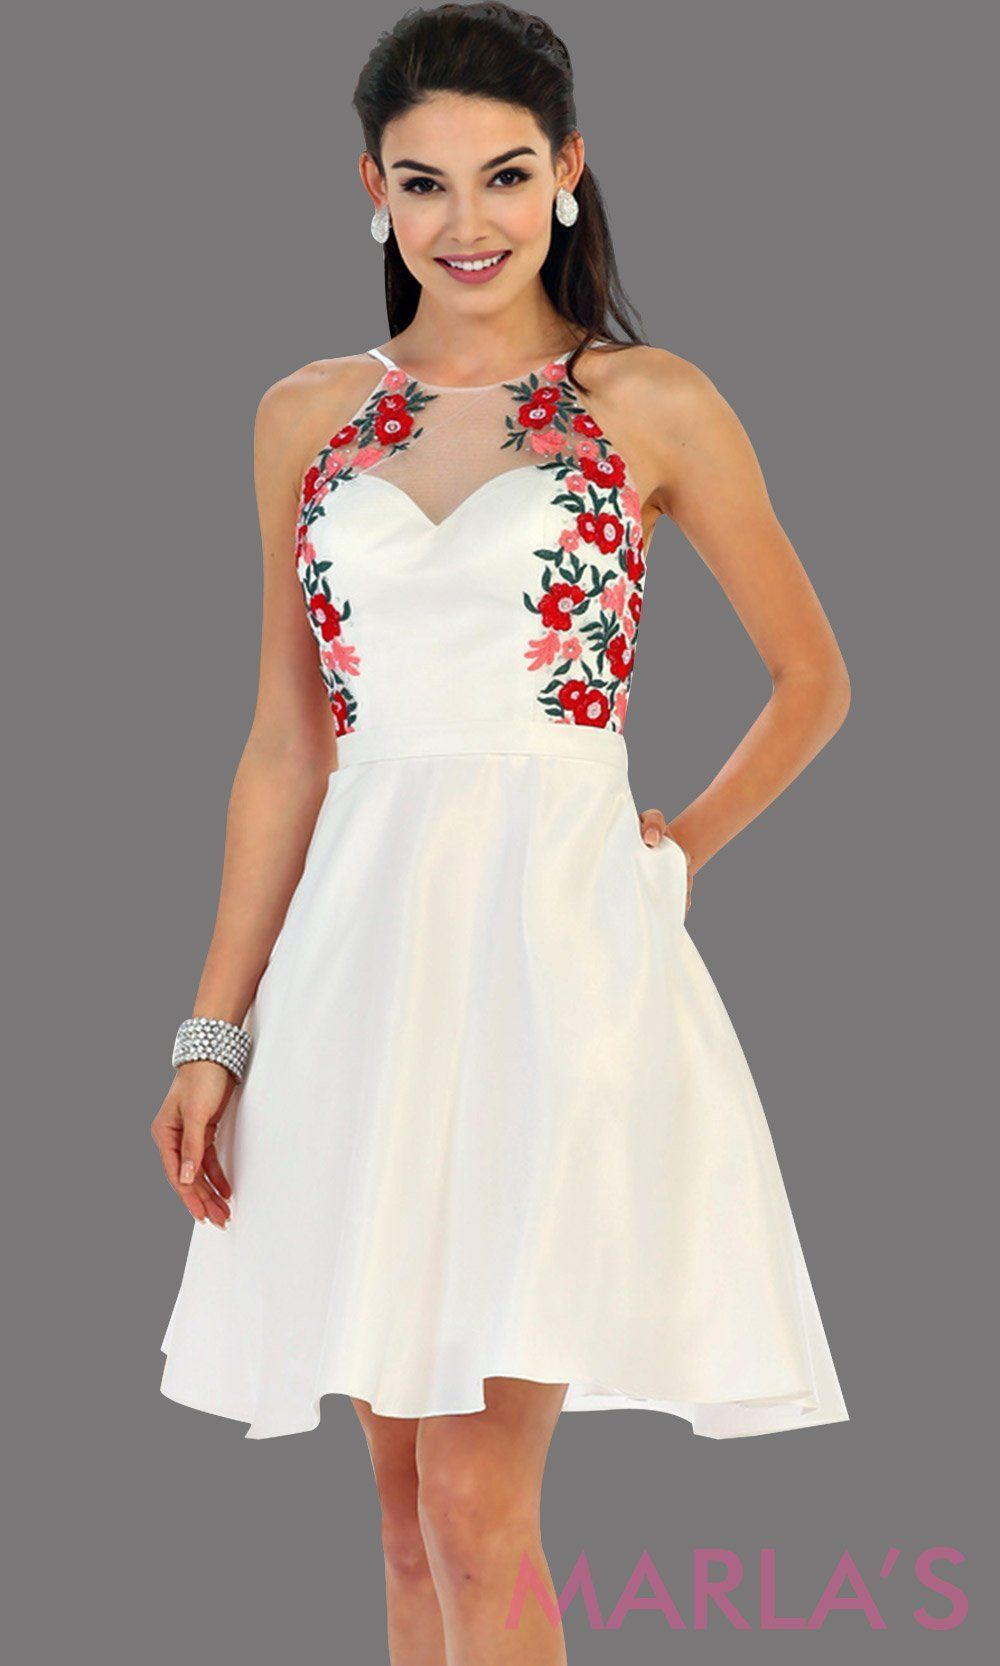 4e4fee27f84 1446-Short high neck white grade 8 graduation dress with floral embroidery.  This dress features pockets. Perfect white short prom dress